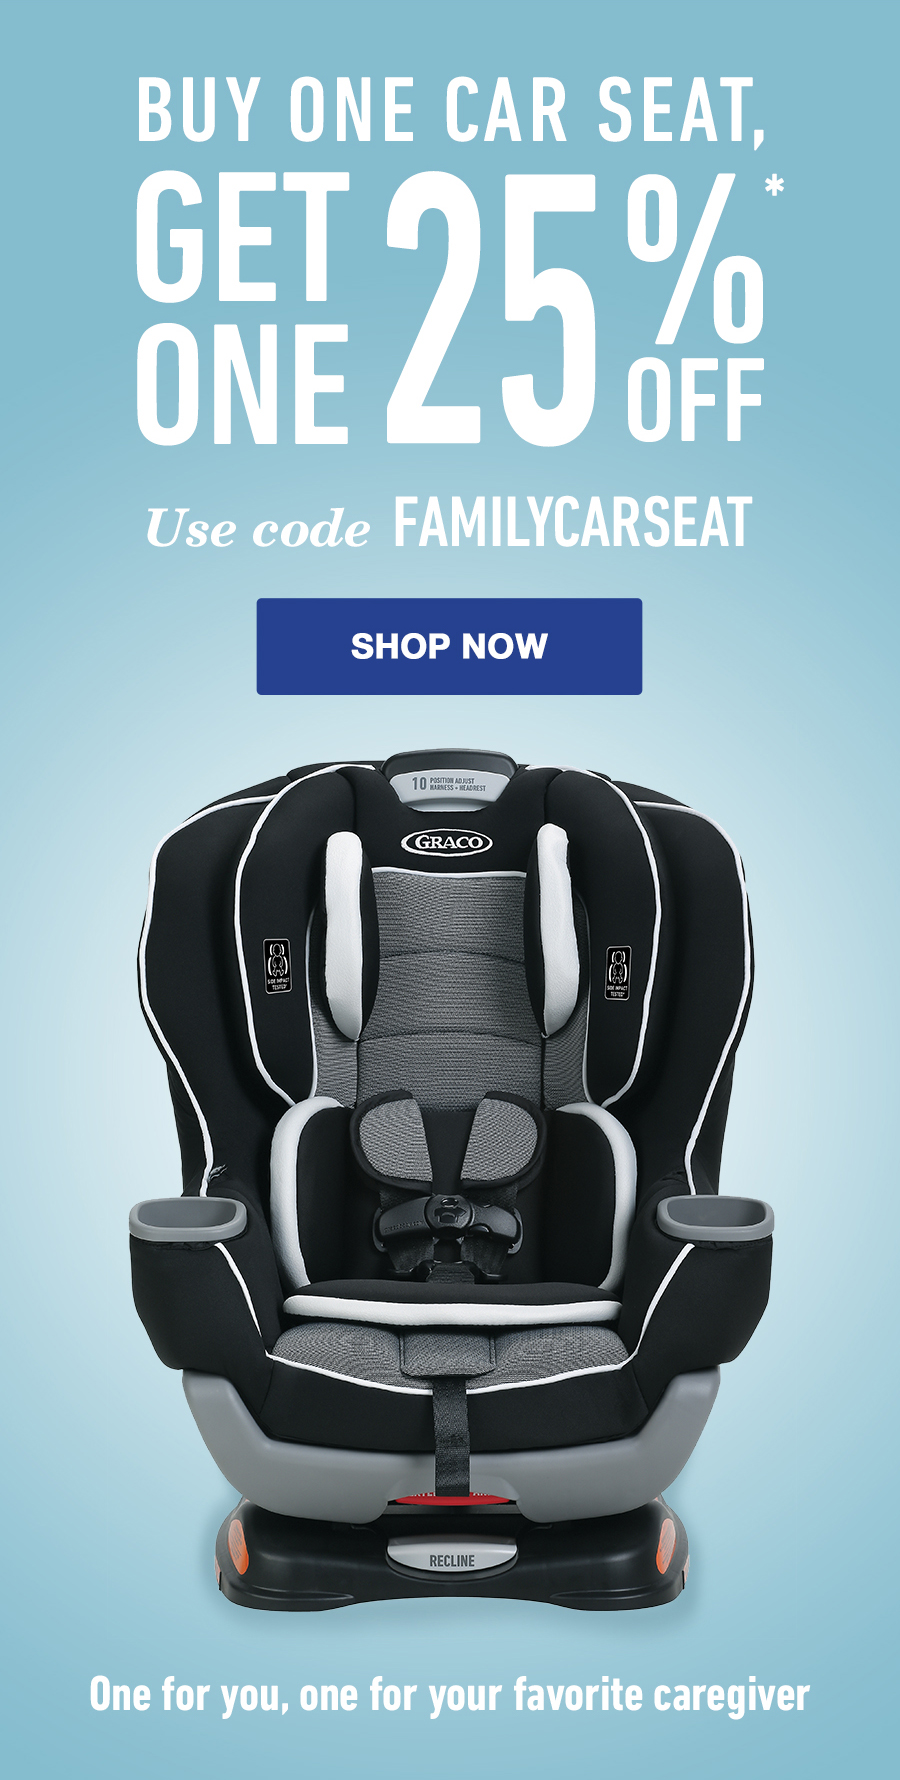 Shapely Receive Off A Second Car Seatof Equal Or Lesser Value Free Car Seat Base Code Familycarseat At Checkout Purchase Infant Carseat Limited Buy One Car Get One Off Milled baby Graco All In One Car Seat